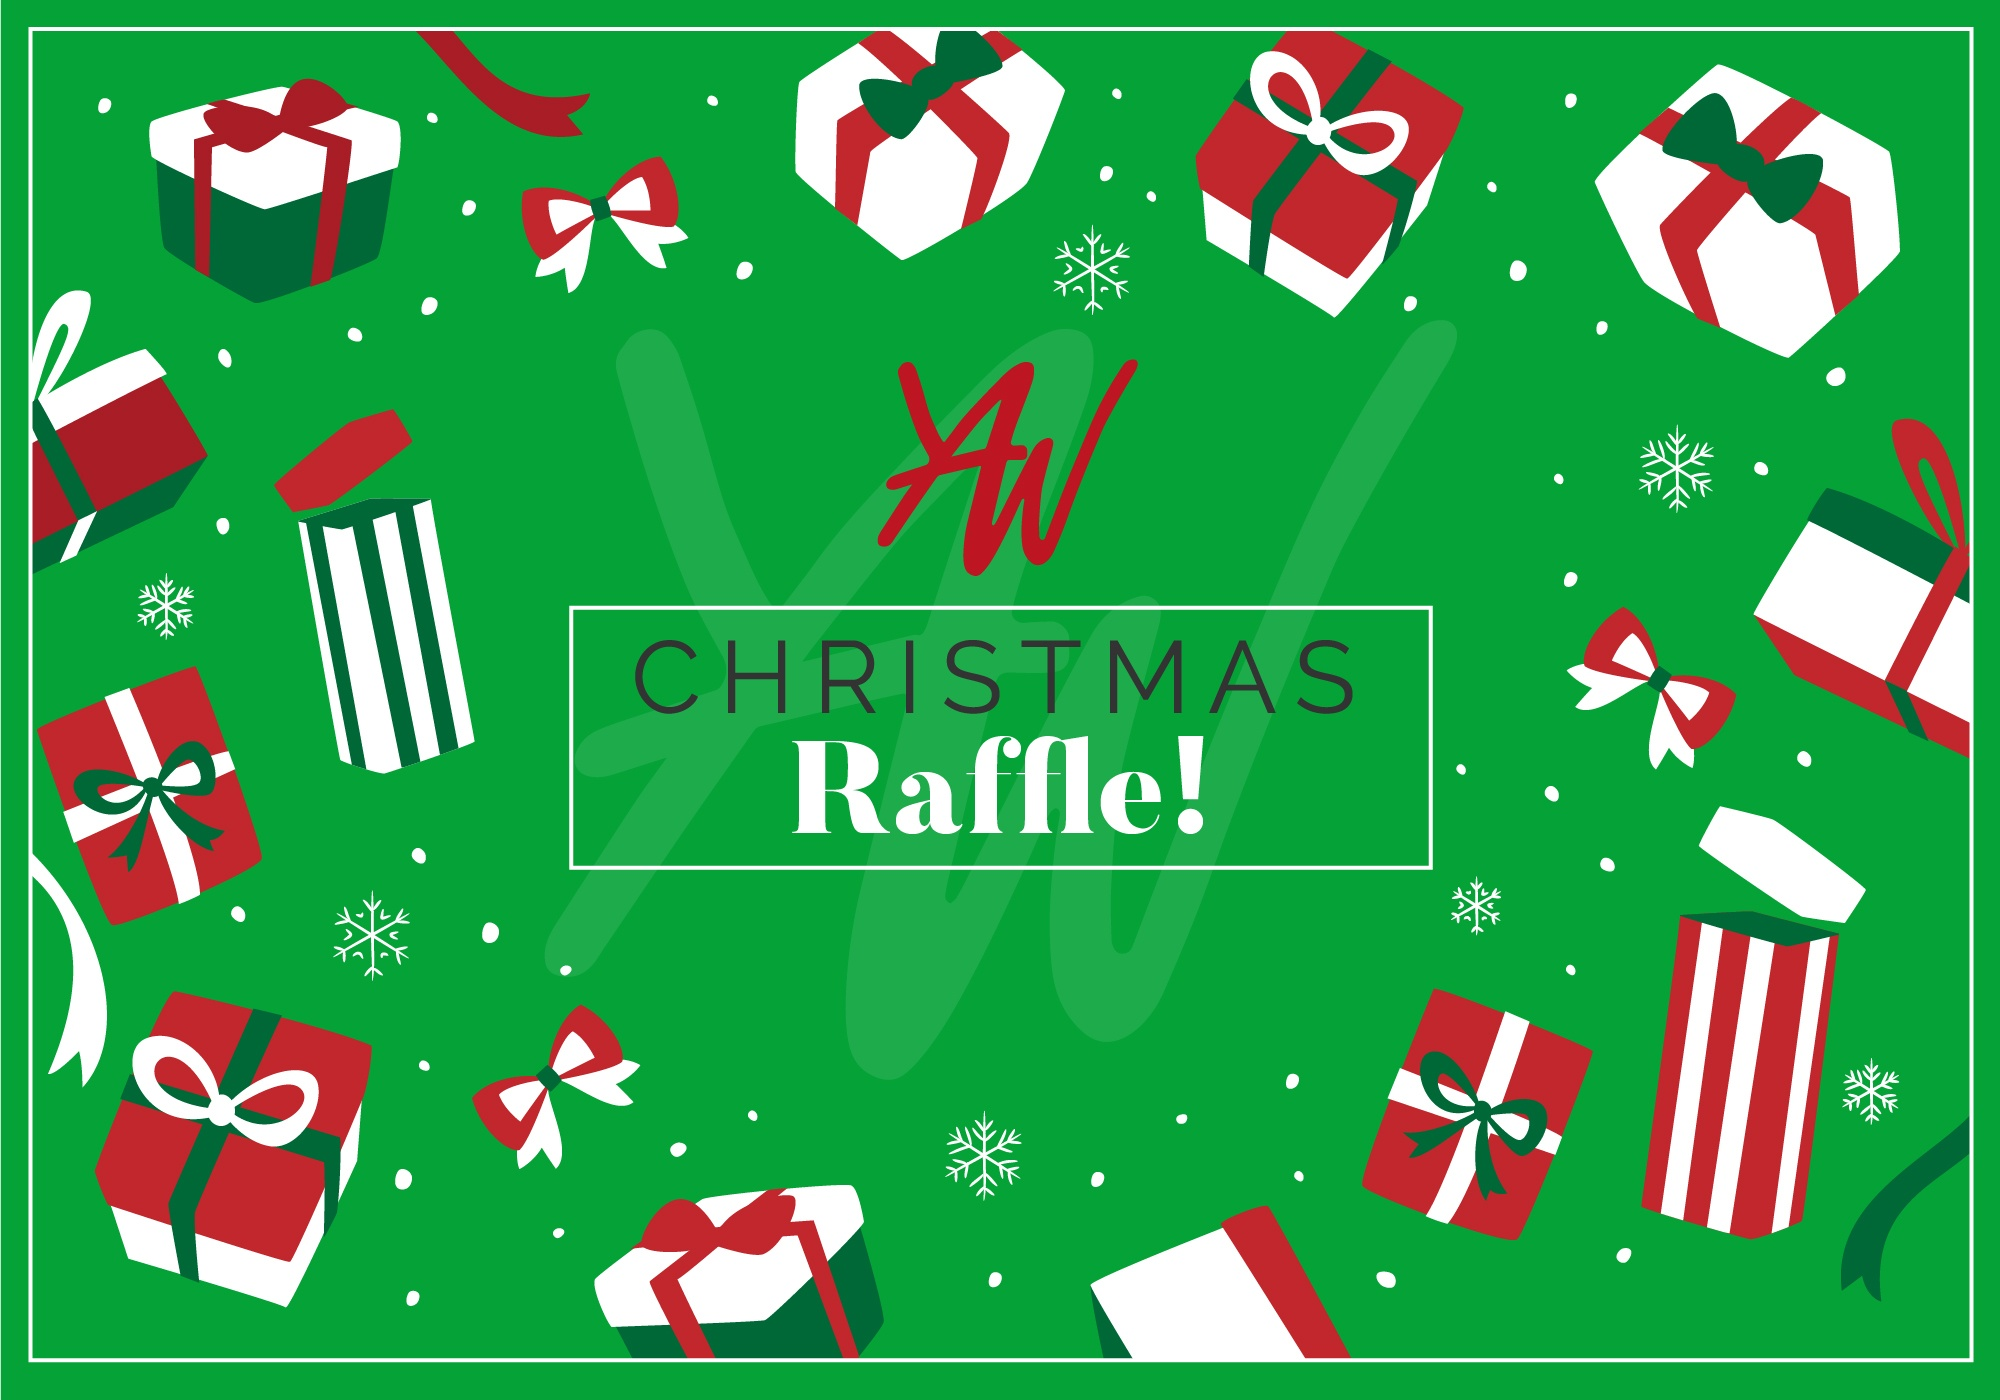 Youth Action Wiltshire Christmas Raffle 2020